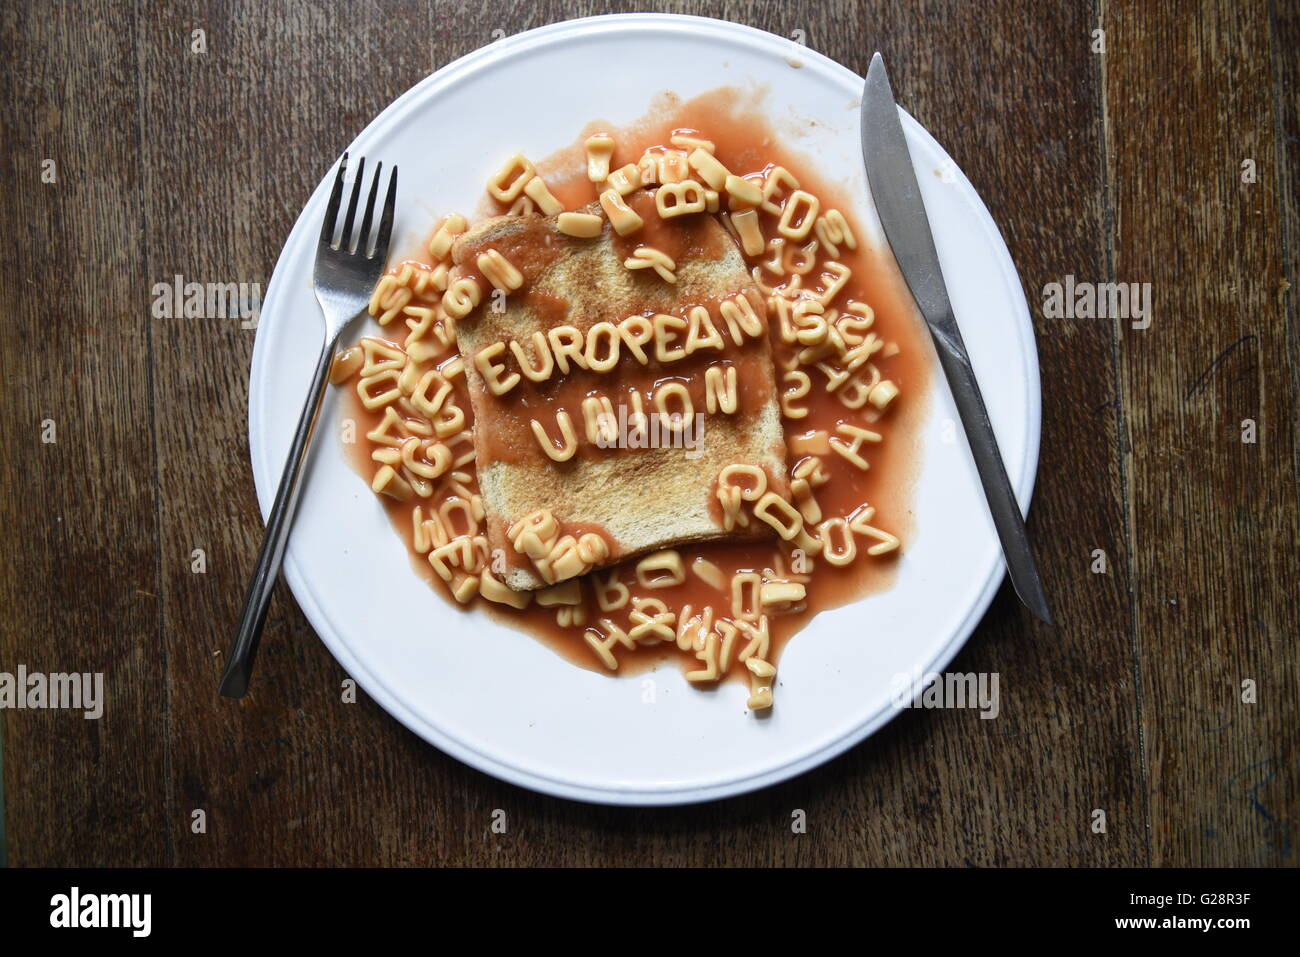 European Union - EU Referendum concept image in kids alphabet pasta on toast - Stock Image